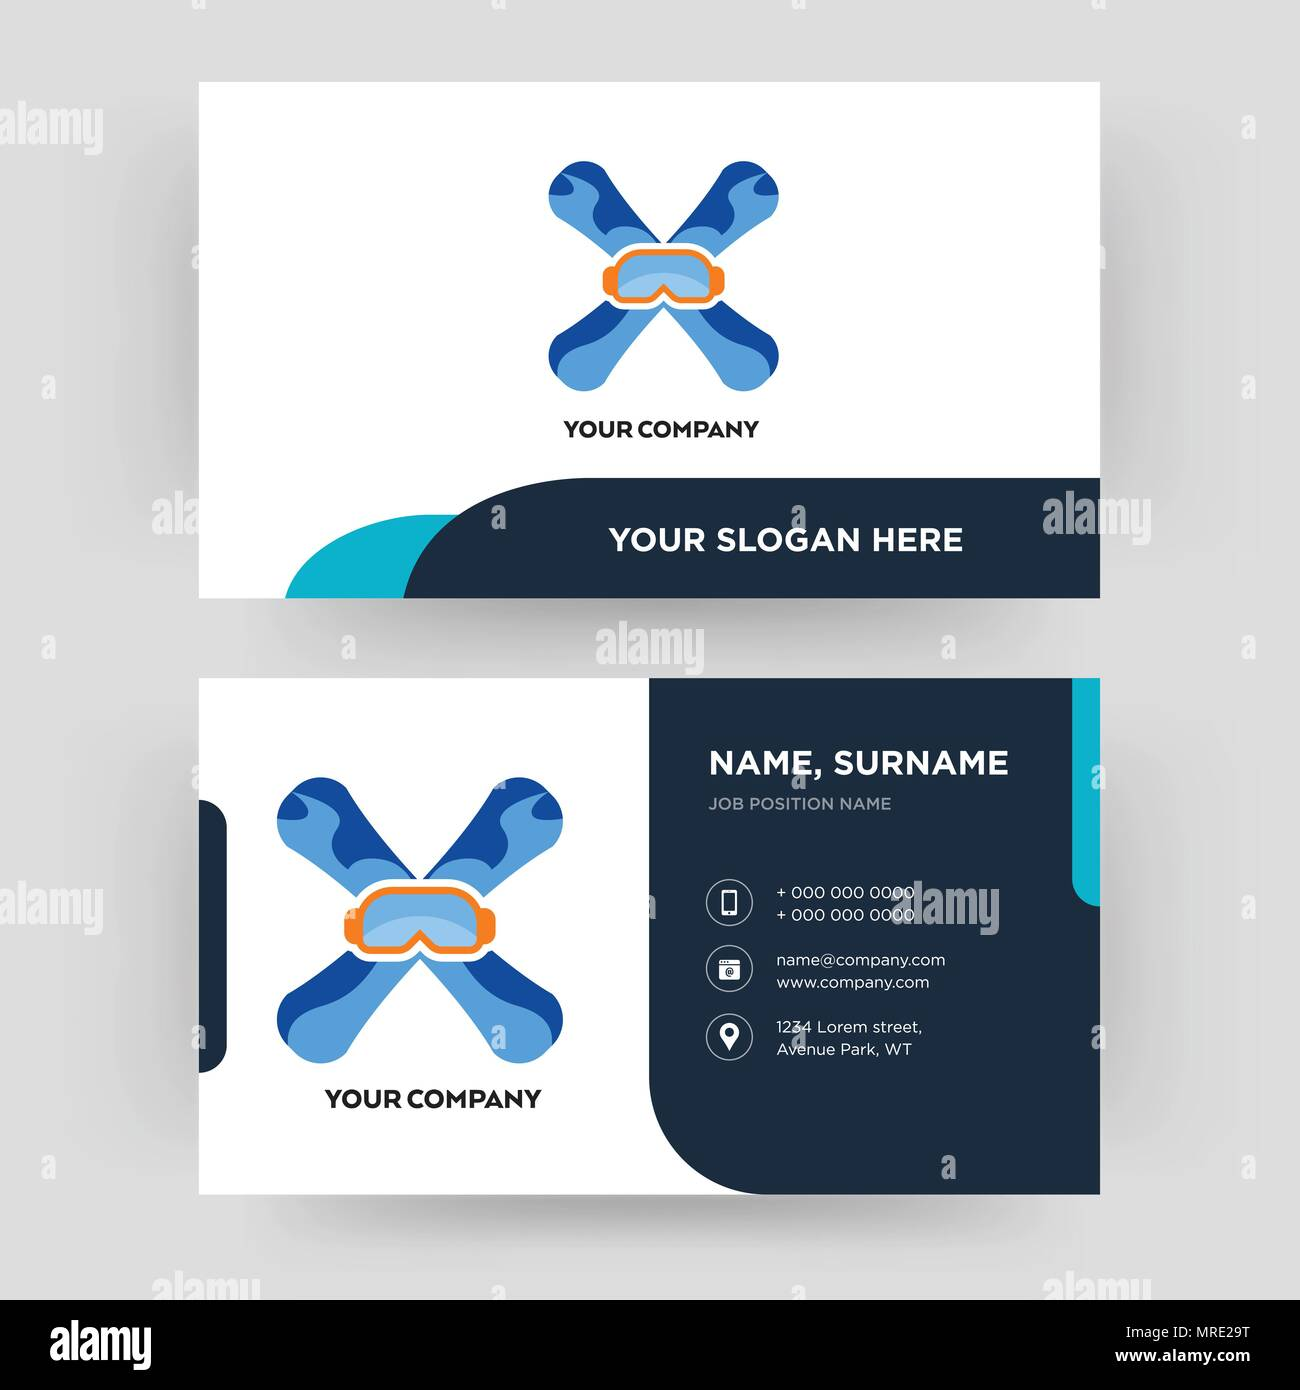 Snowboard Business Card Design Template Visiting For Your Company